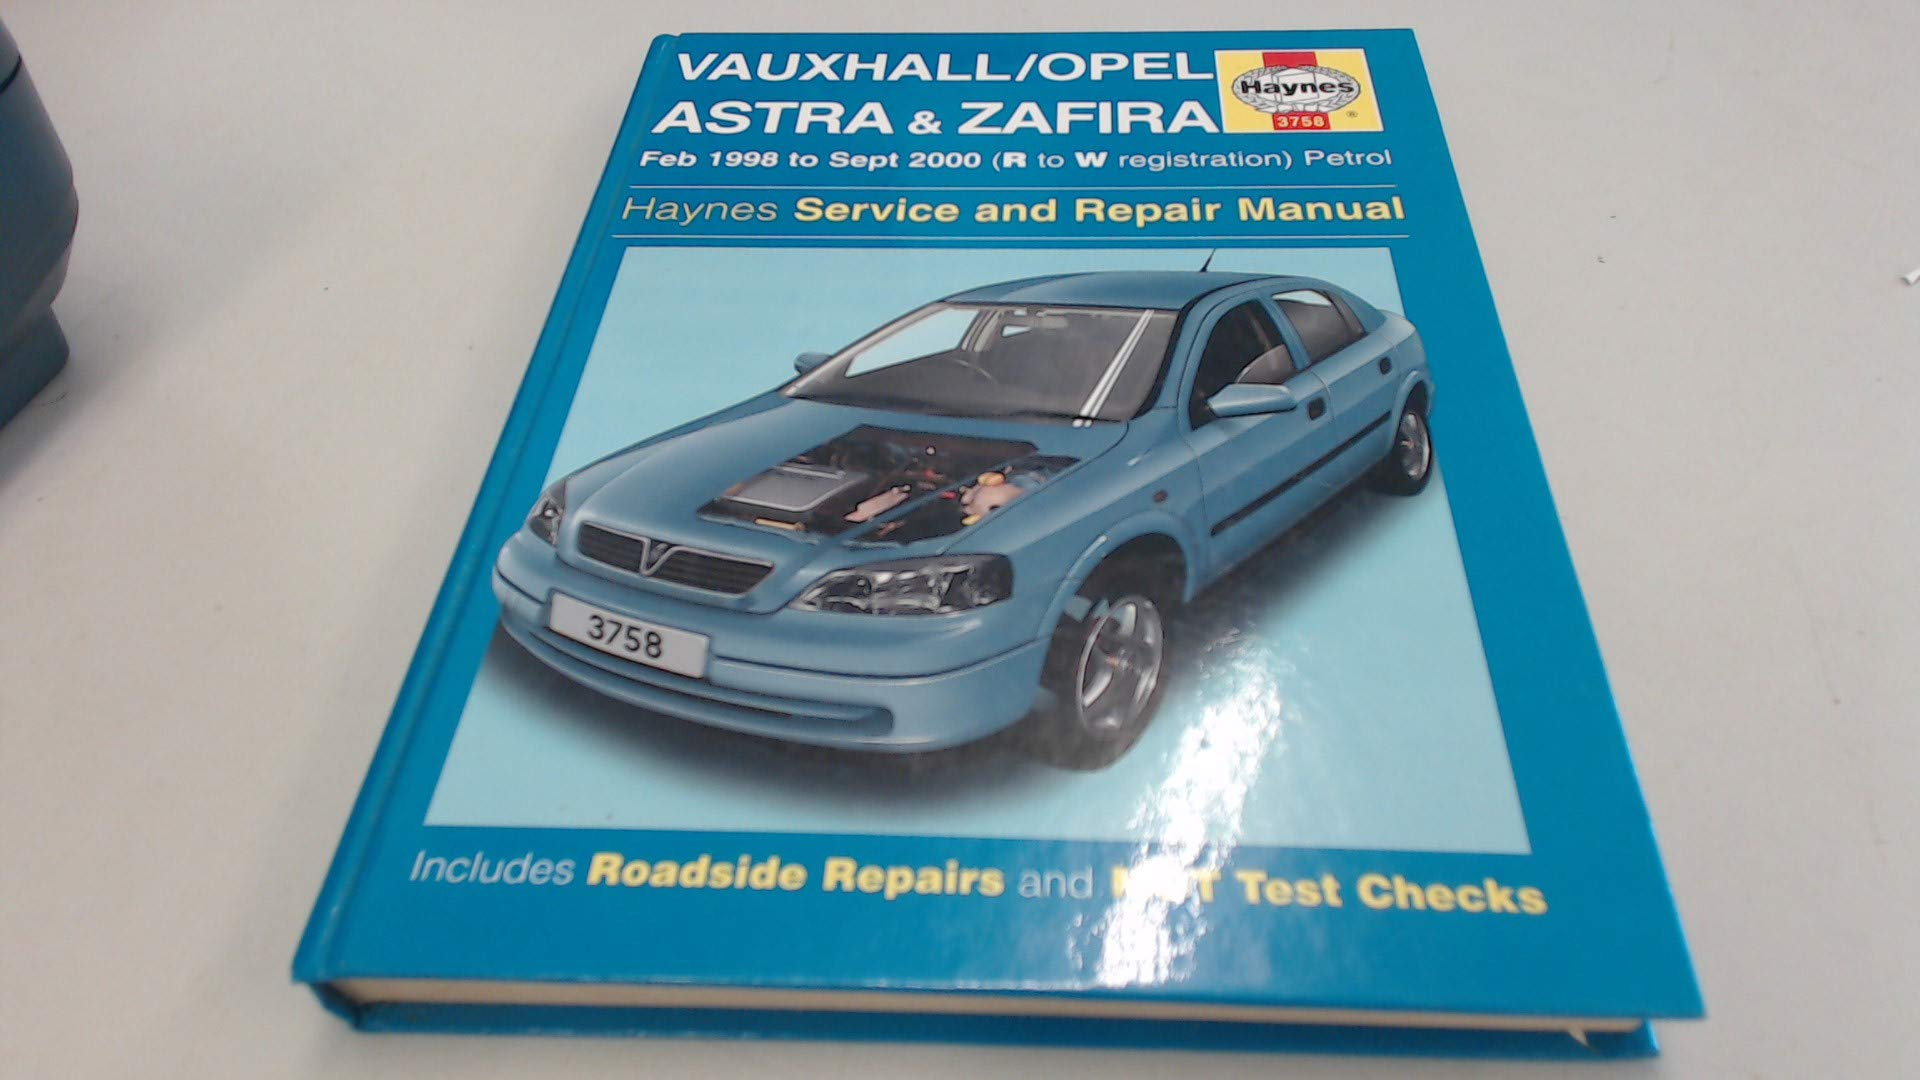 Vauxhall/Opel Astra and Zafira (petrol) Service and Repair Manual (Haynes  Service and Repair Manuals): Martynn Randall, A. K. Legg: 9781859607589: ...